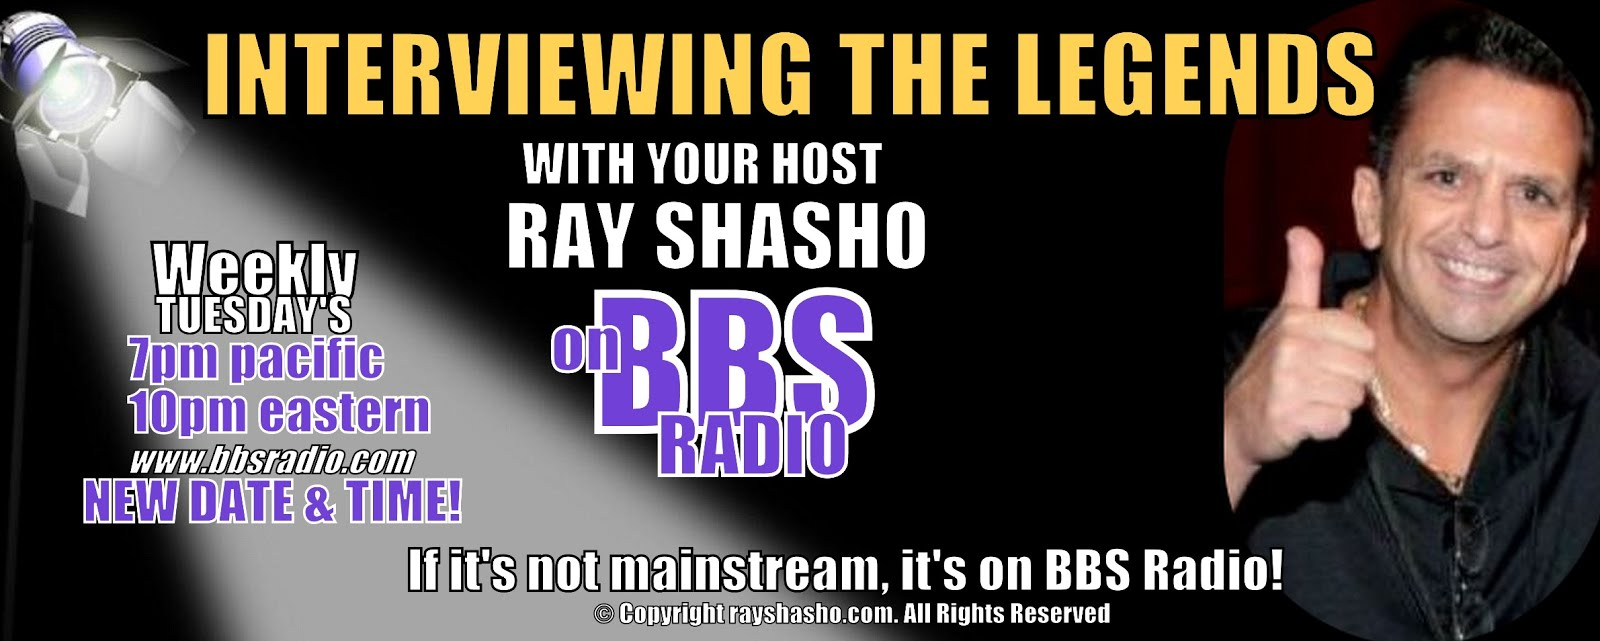 INTERVIEWING THE LEGENDS with RAY SHASHO